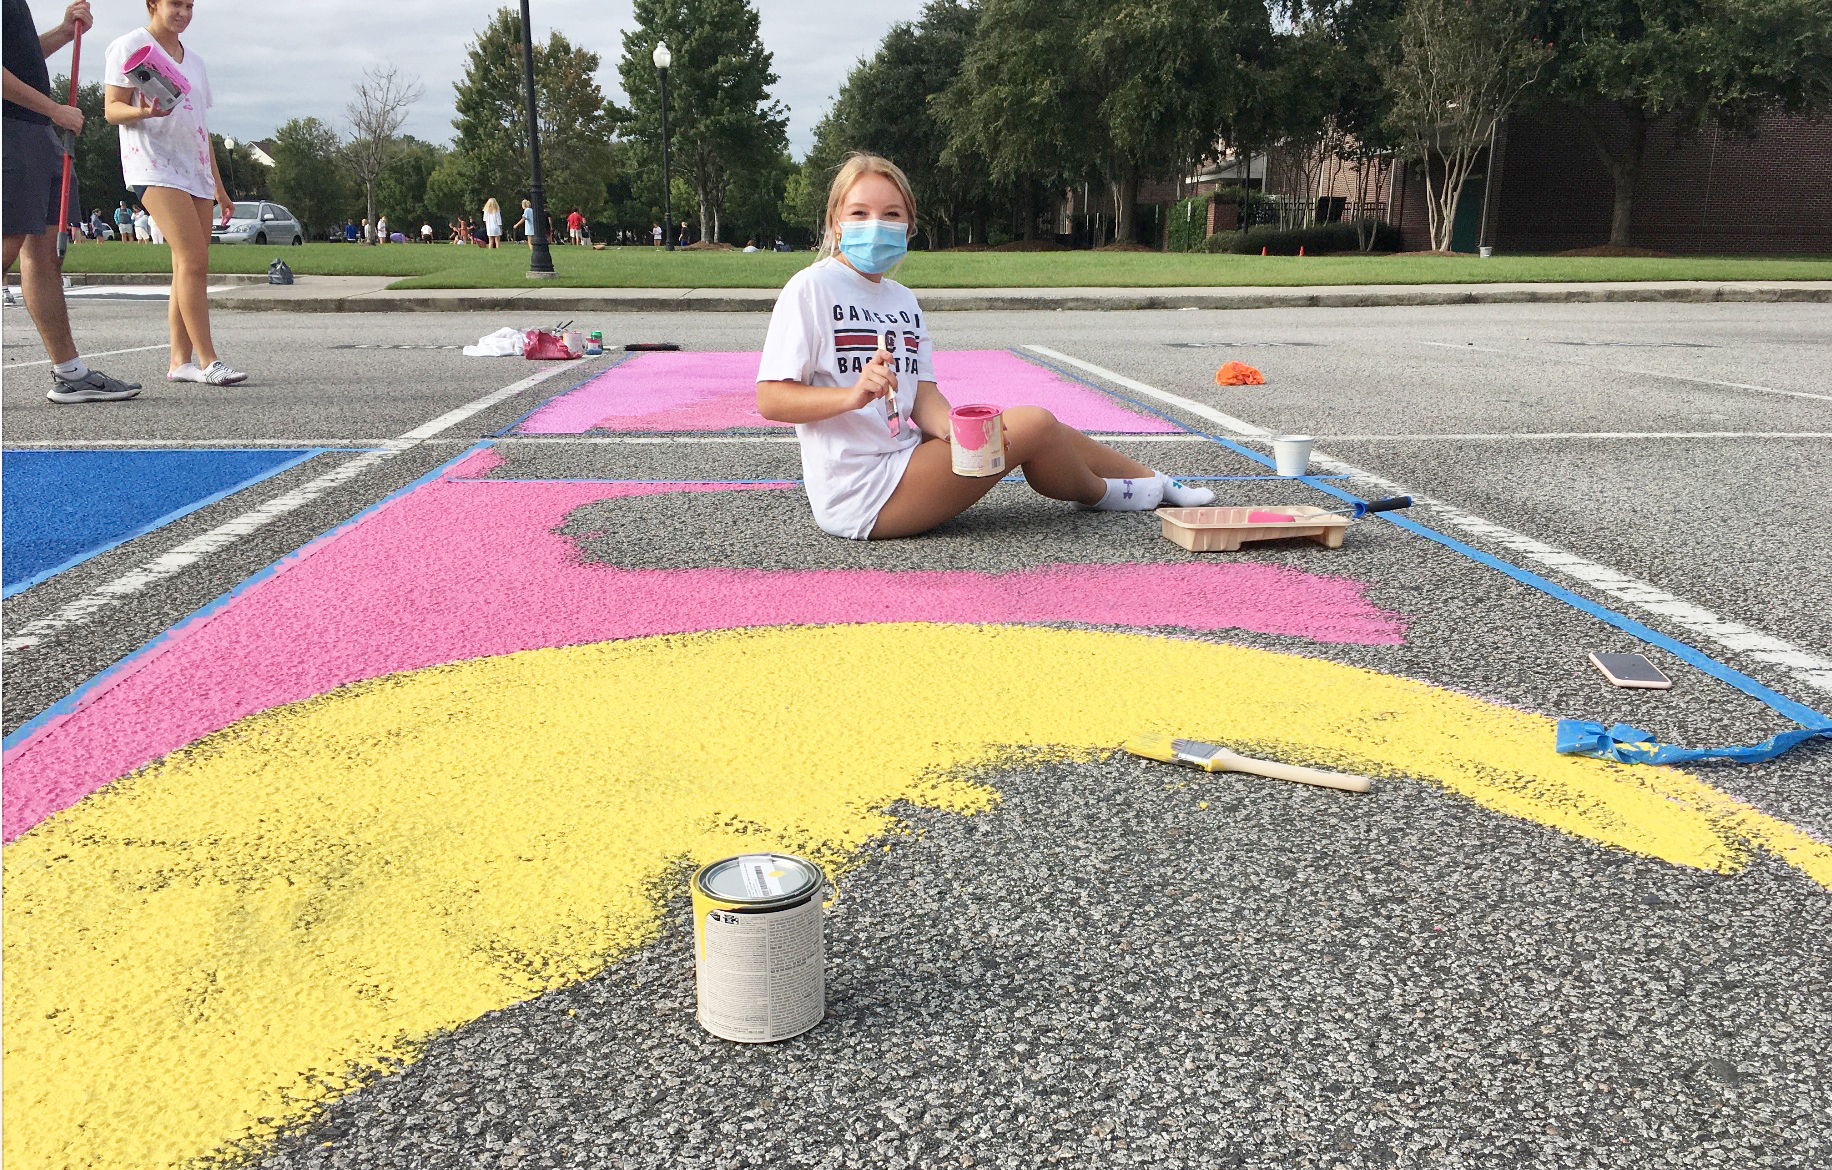 Mary Parker McLaughlin, 17, proudly displays her pink and yellow colored parking spot. When she's finished painting, she said it will resemble a smiley face design.